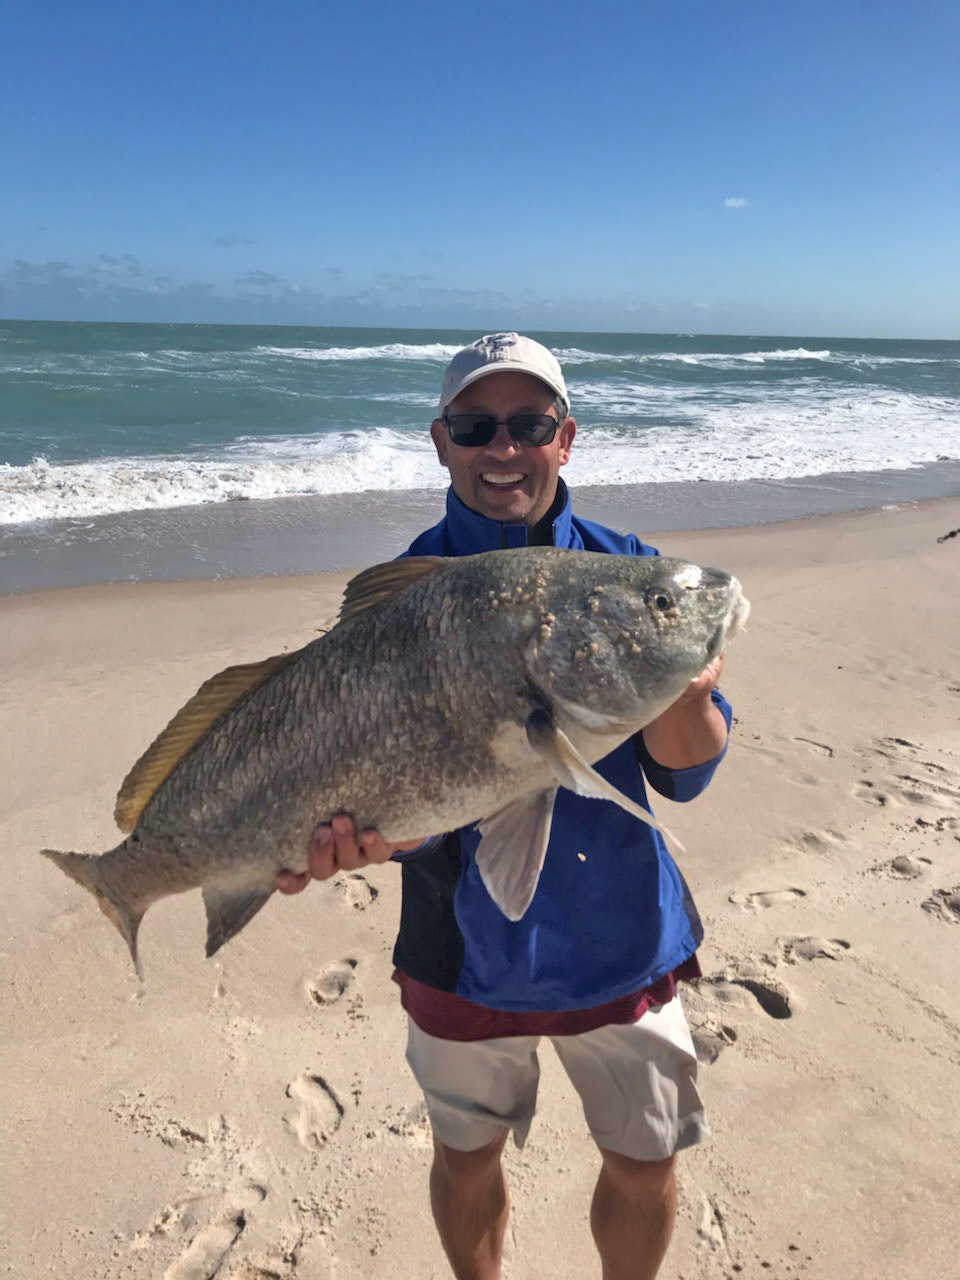 man holding large fish standing on beach